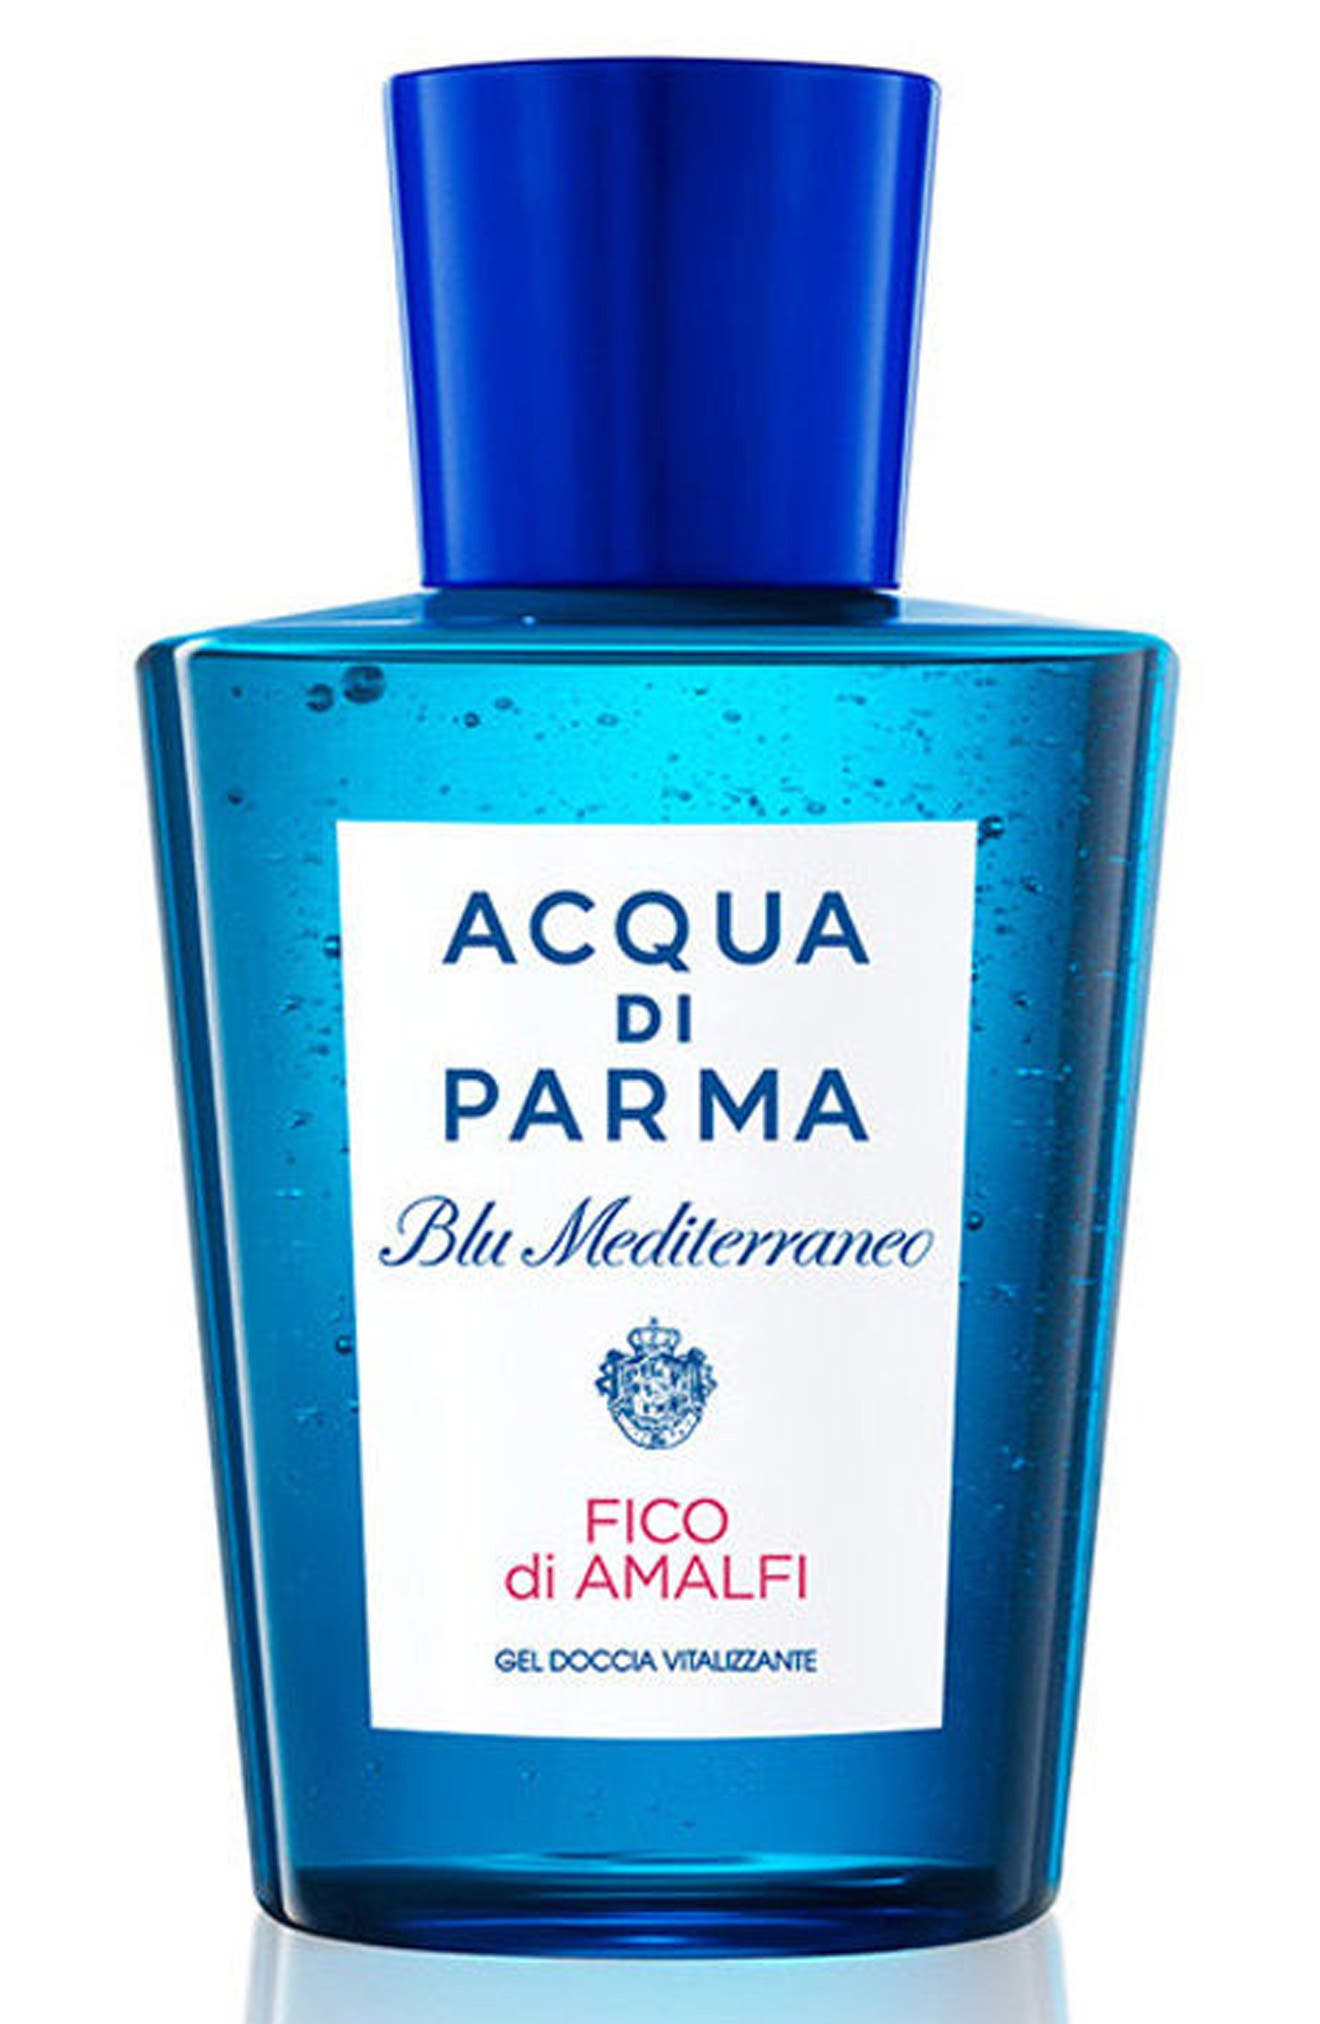 Alternate Image 1 Selected - Acqua di Parma 'Blu Mediterraneo - Fico di Amalfi' Shower Gel